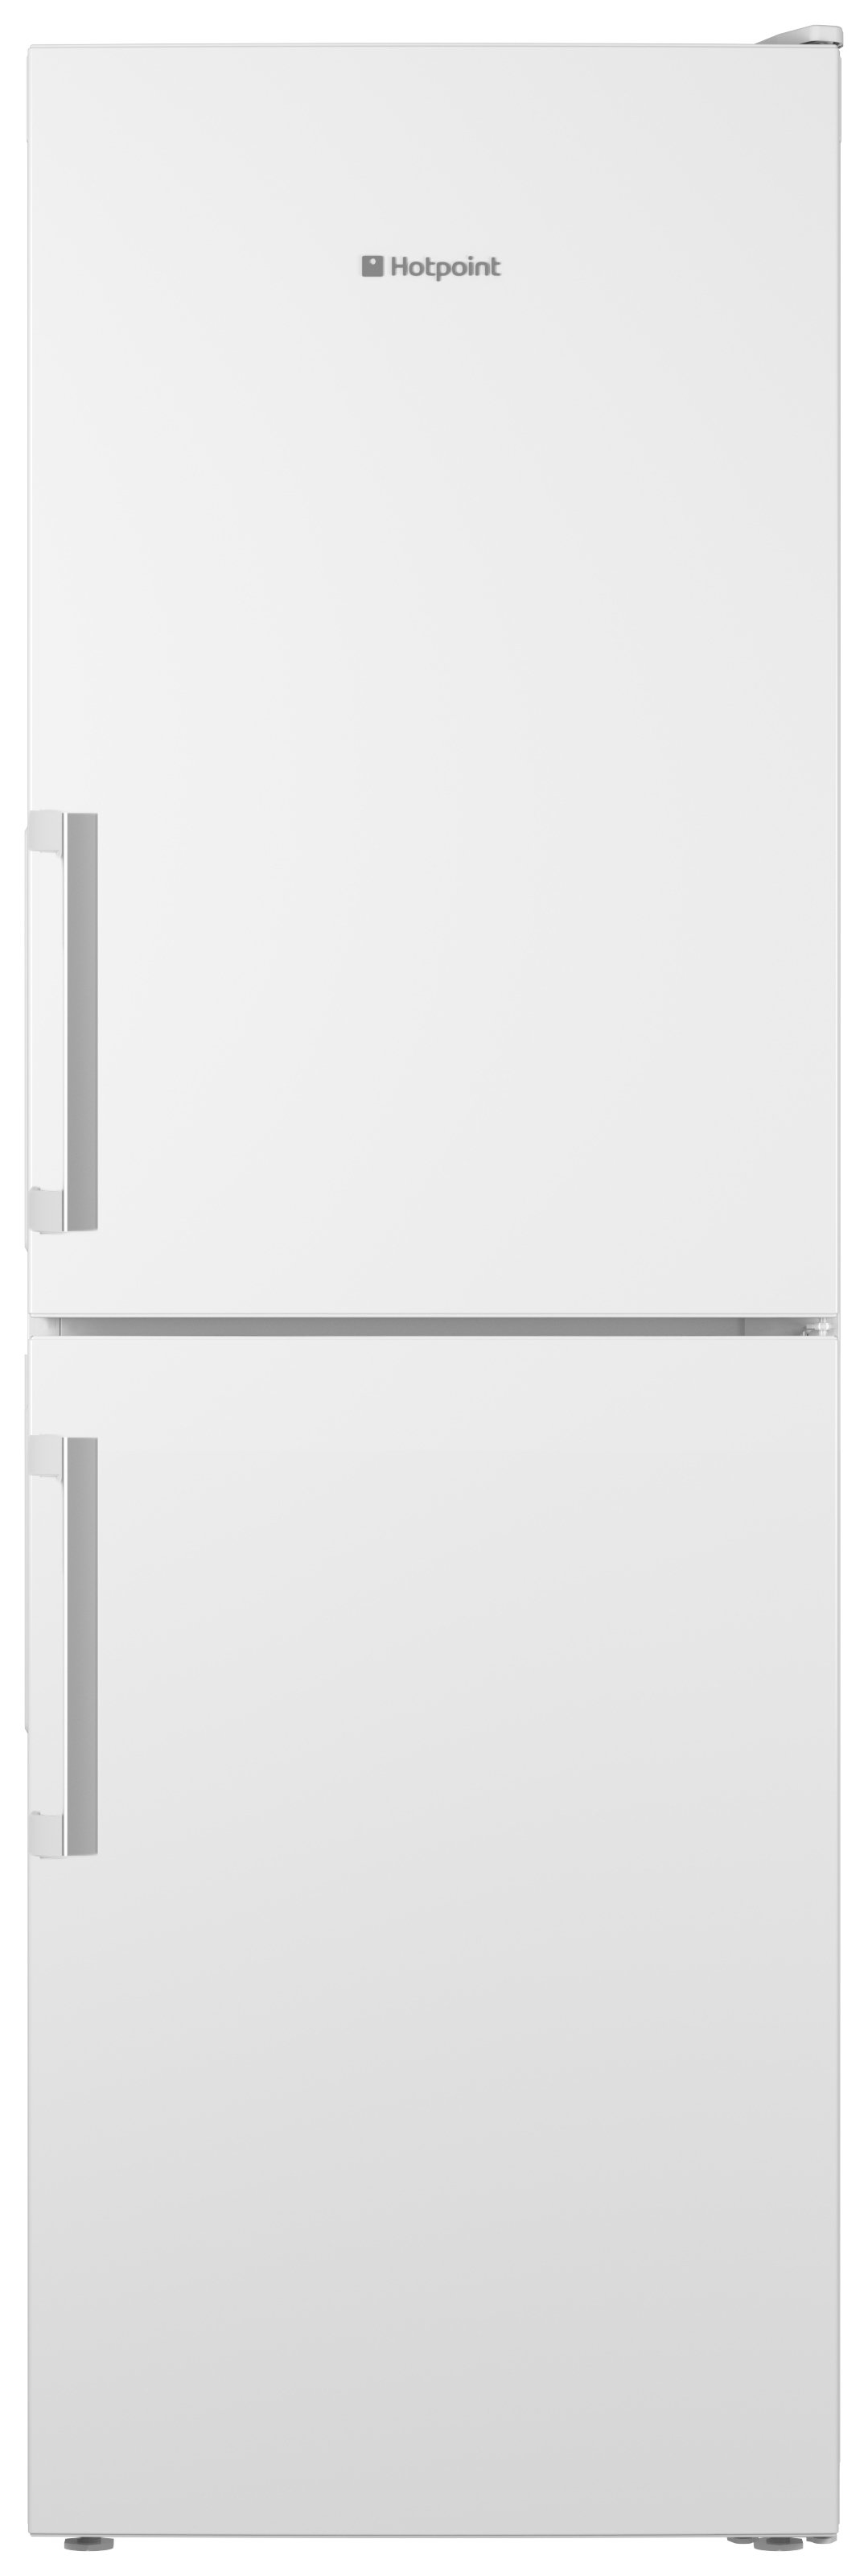 Hotpoint LAG70L1WH Fridge Freezer - White.